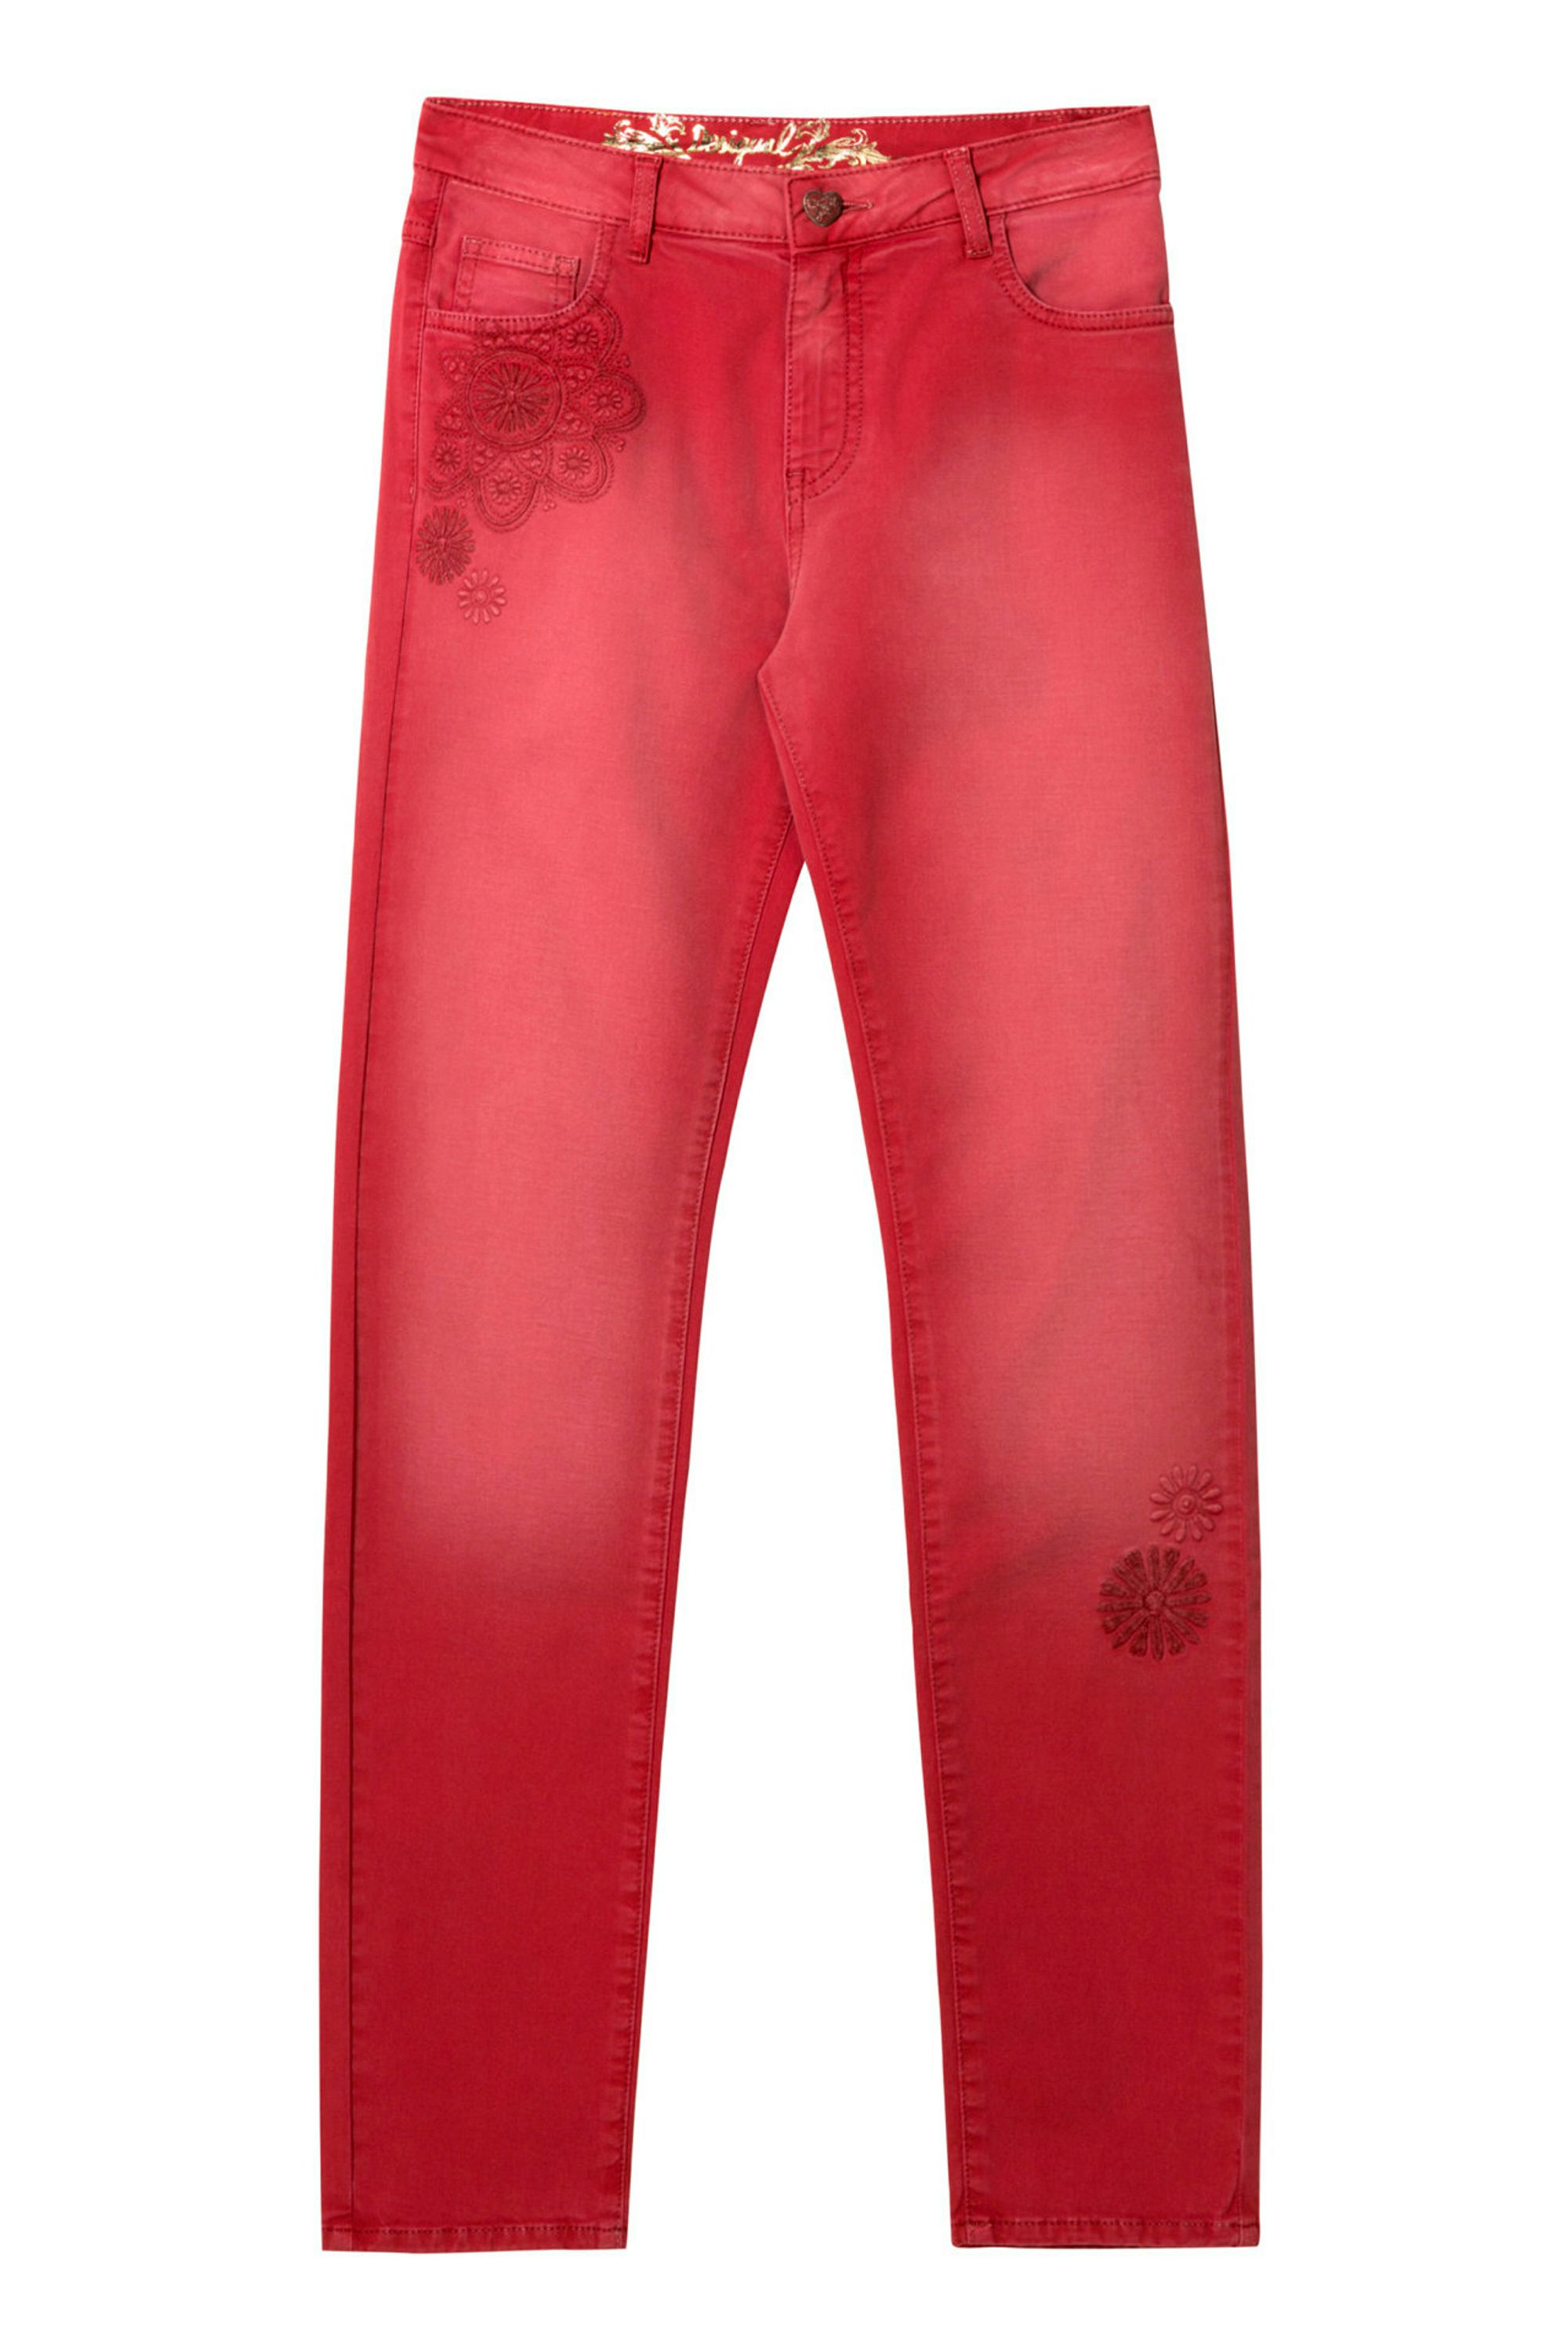 Desigual Angelinass Pant, Red